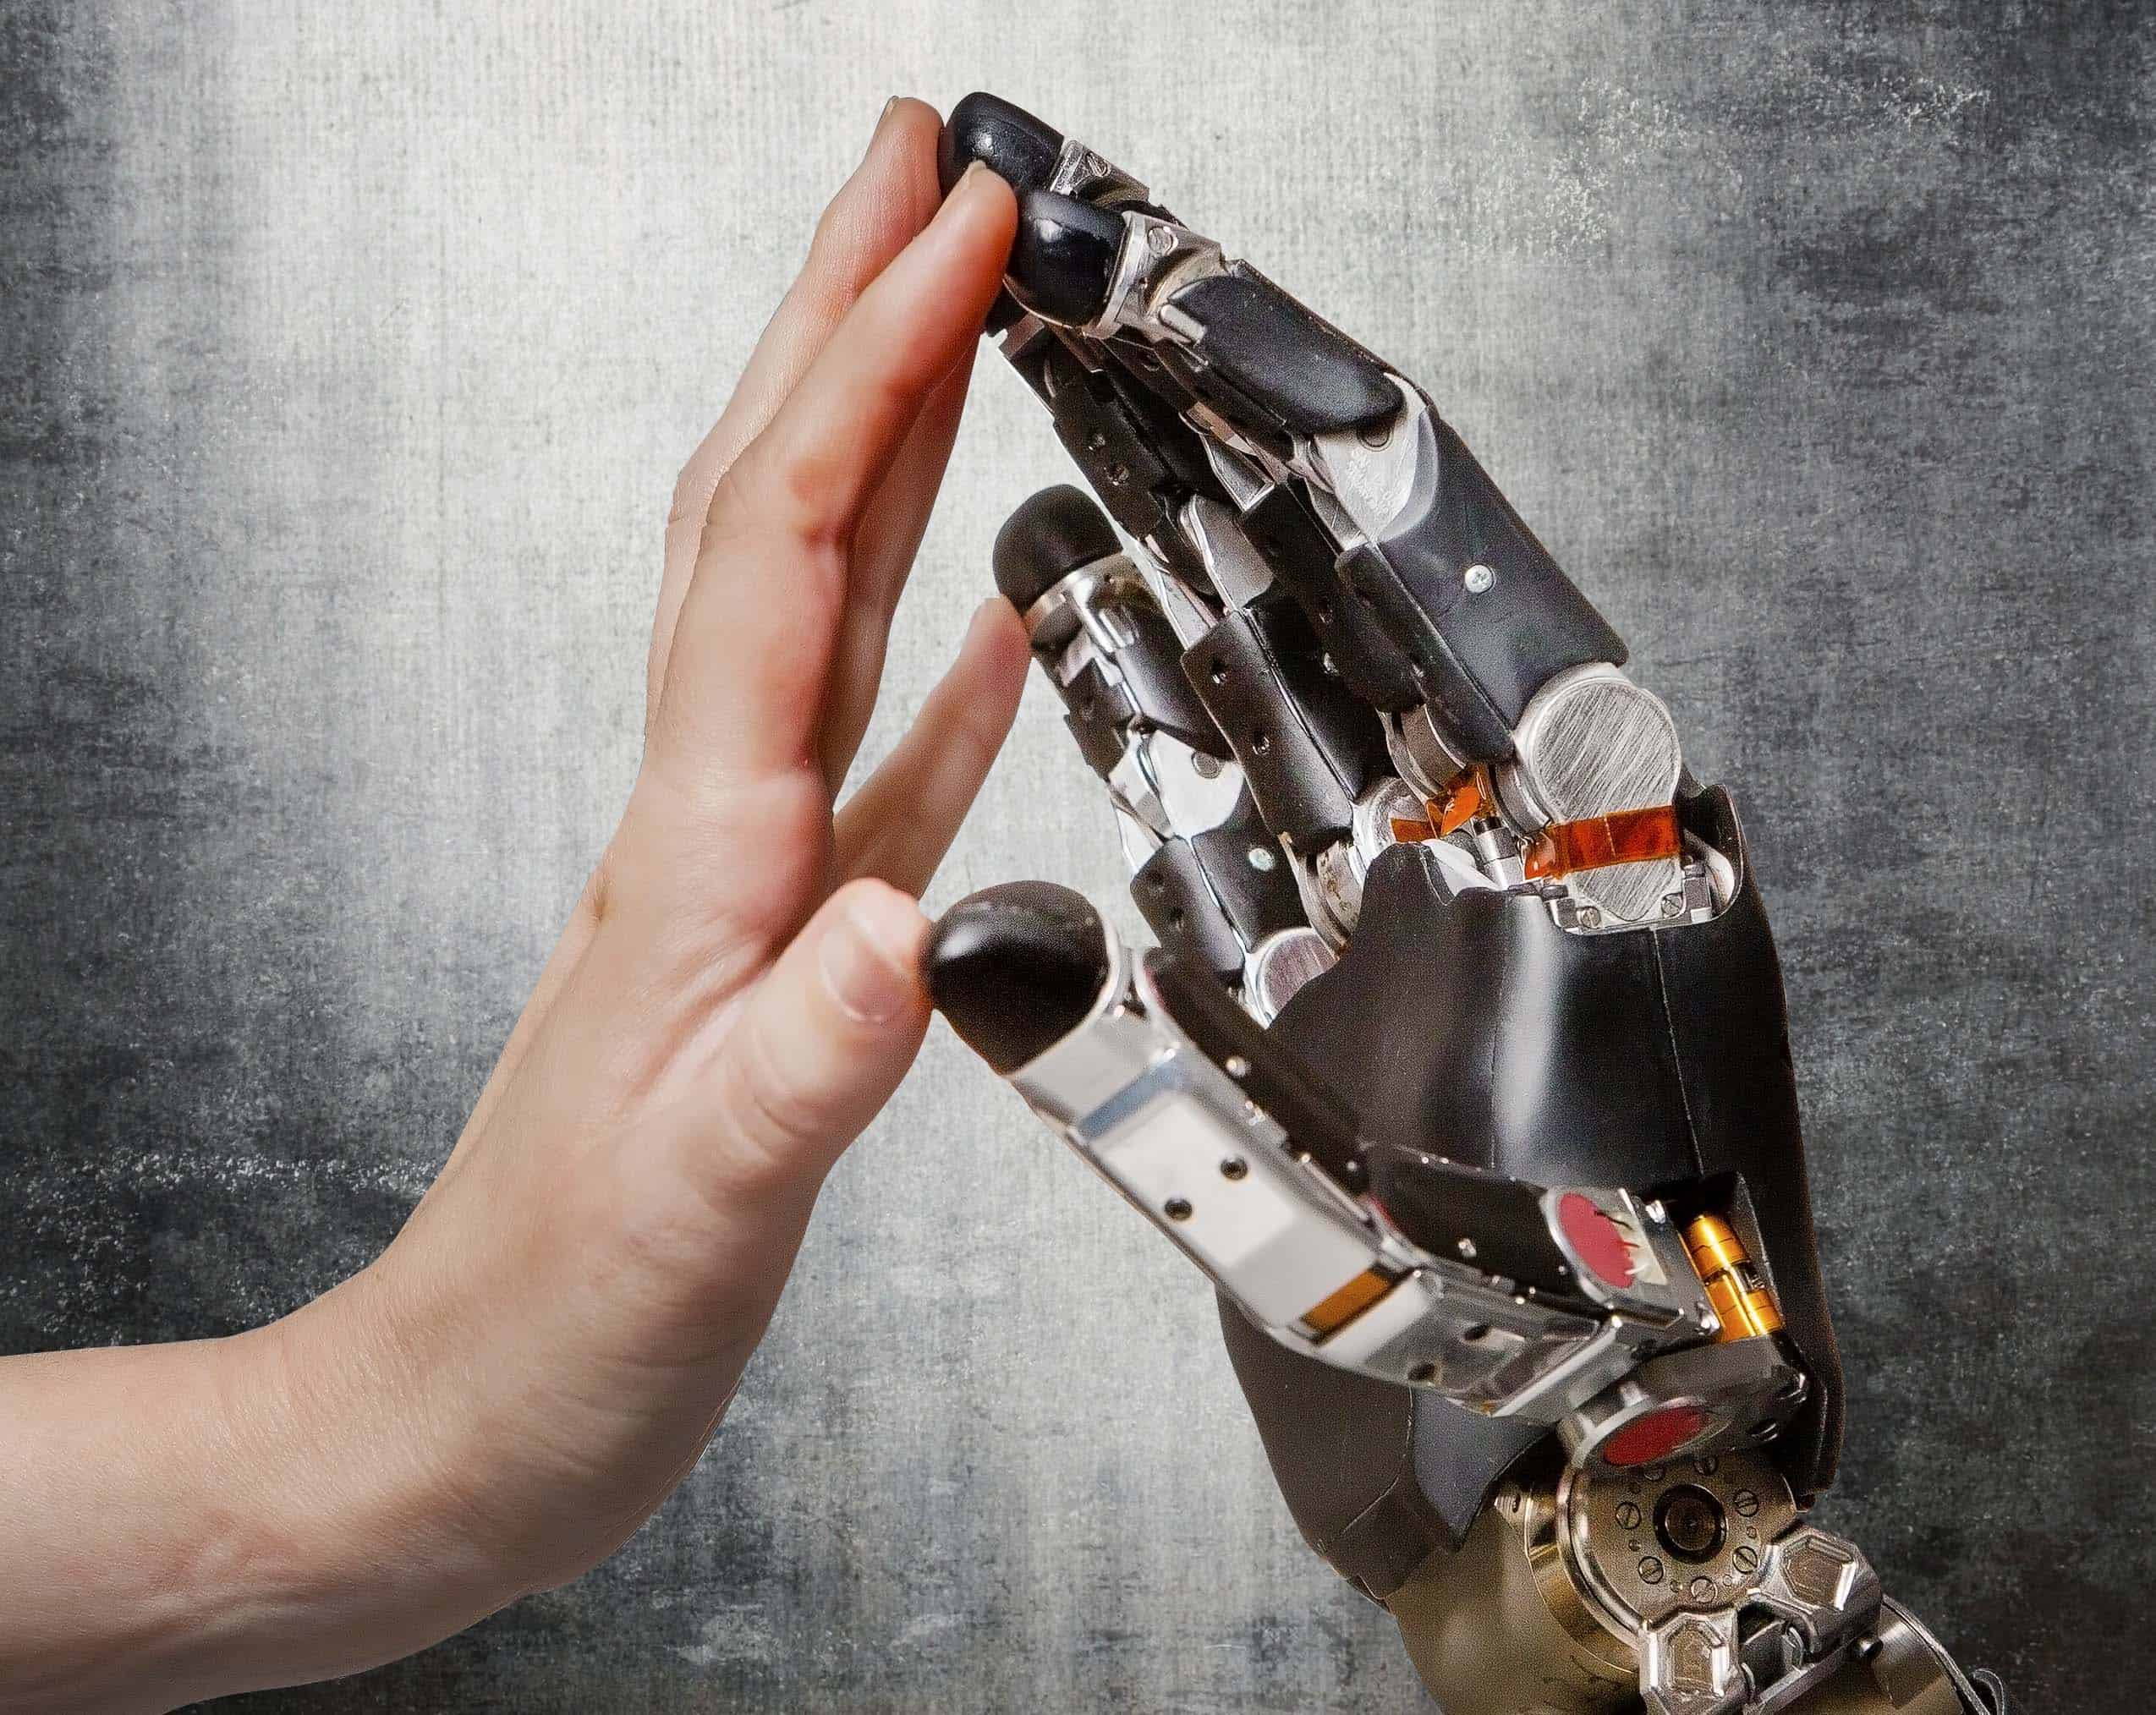 Scientists have made a breakthrough when it comes to prosthetic limbs. They've laid the groundwork for touch-sensitive limbs that could one day convey real-time sensory information to amputees via a direct interface with the brain. (Photo : Proceedings of the National Academy of Sciences, Oct-2013)